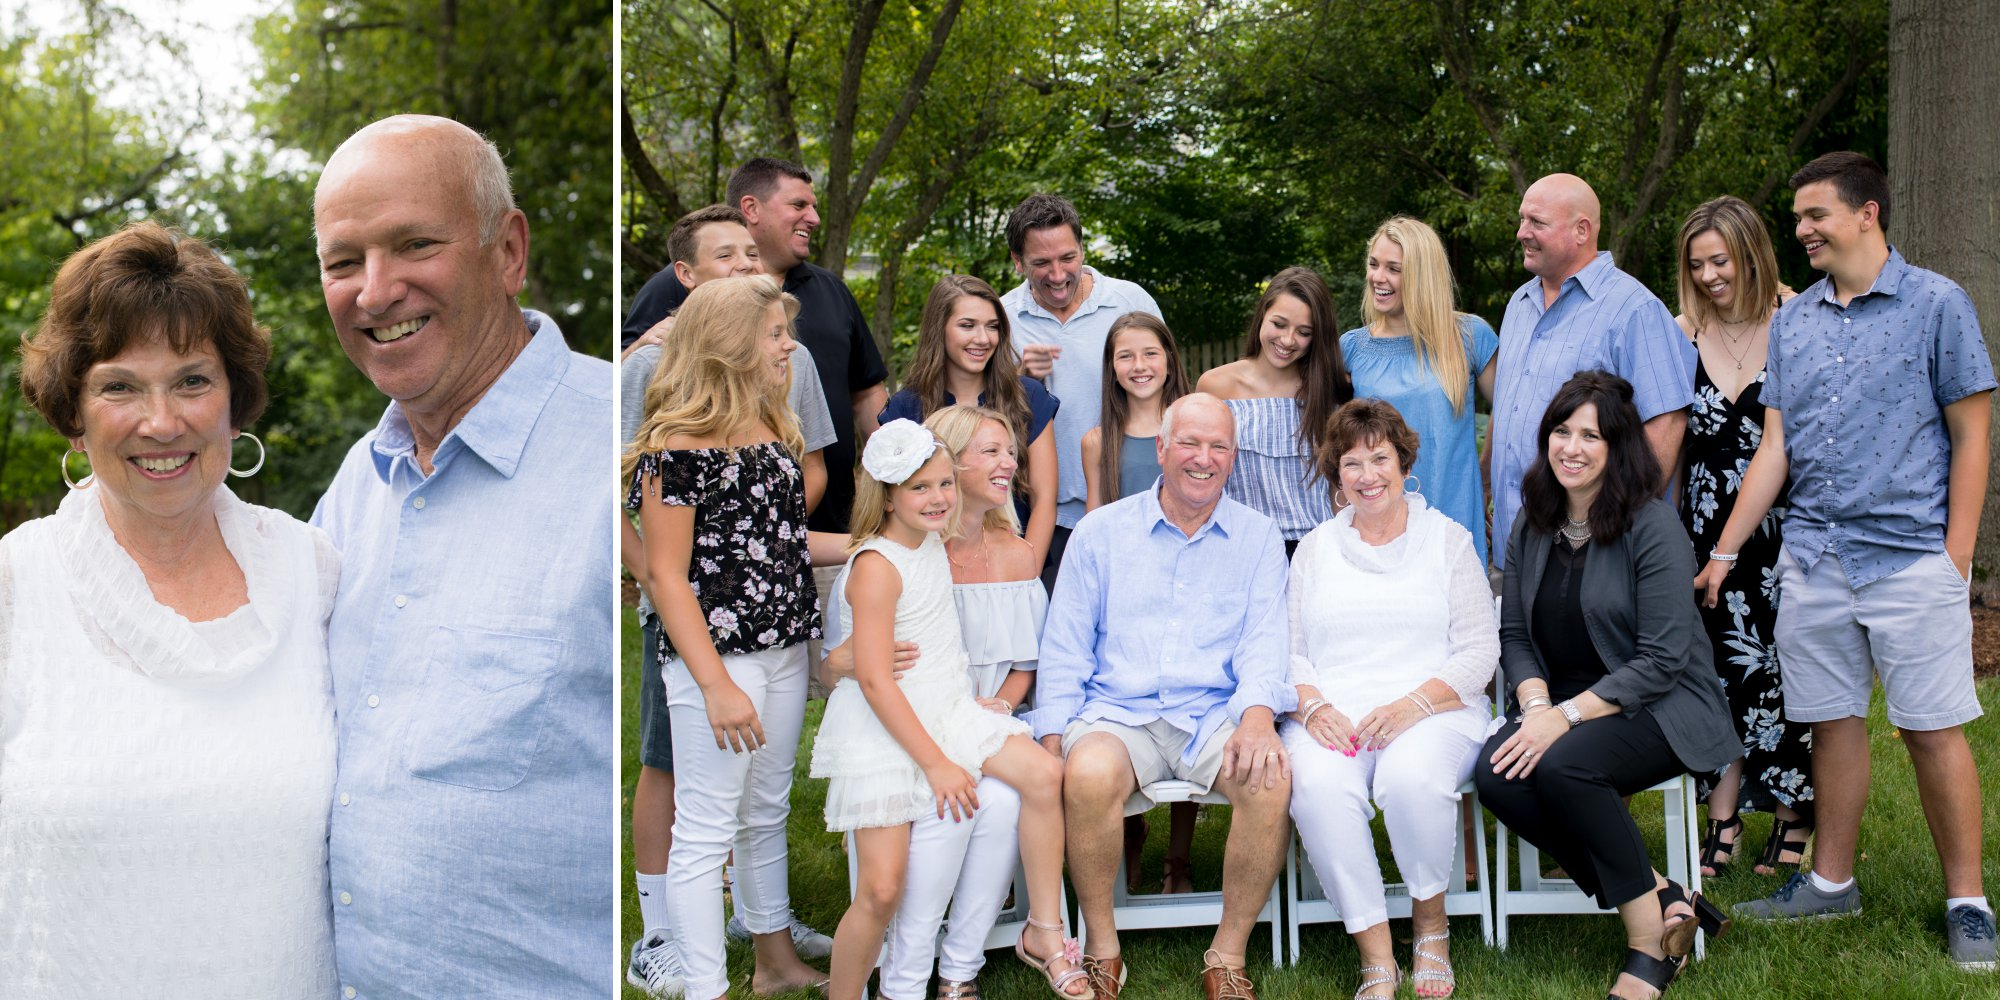 Grant Extended Family Pictures R